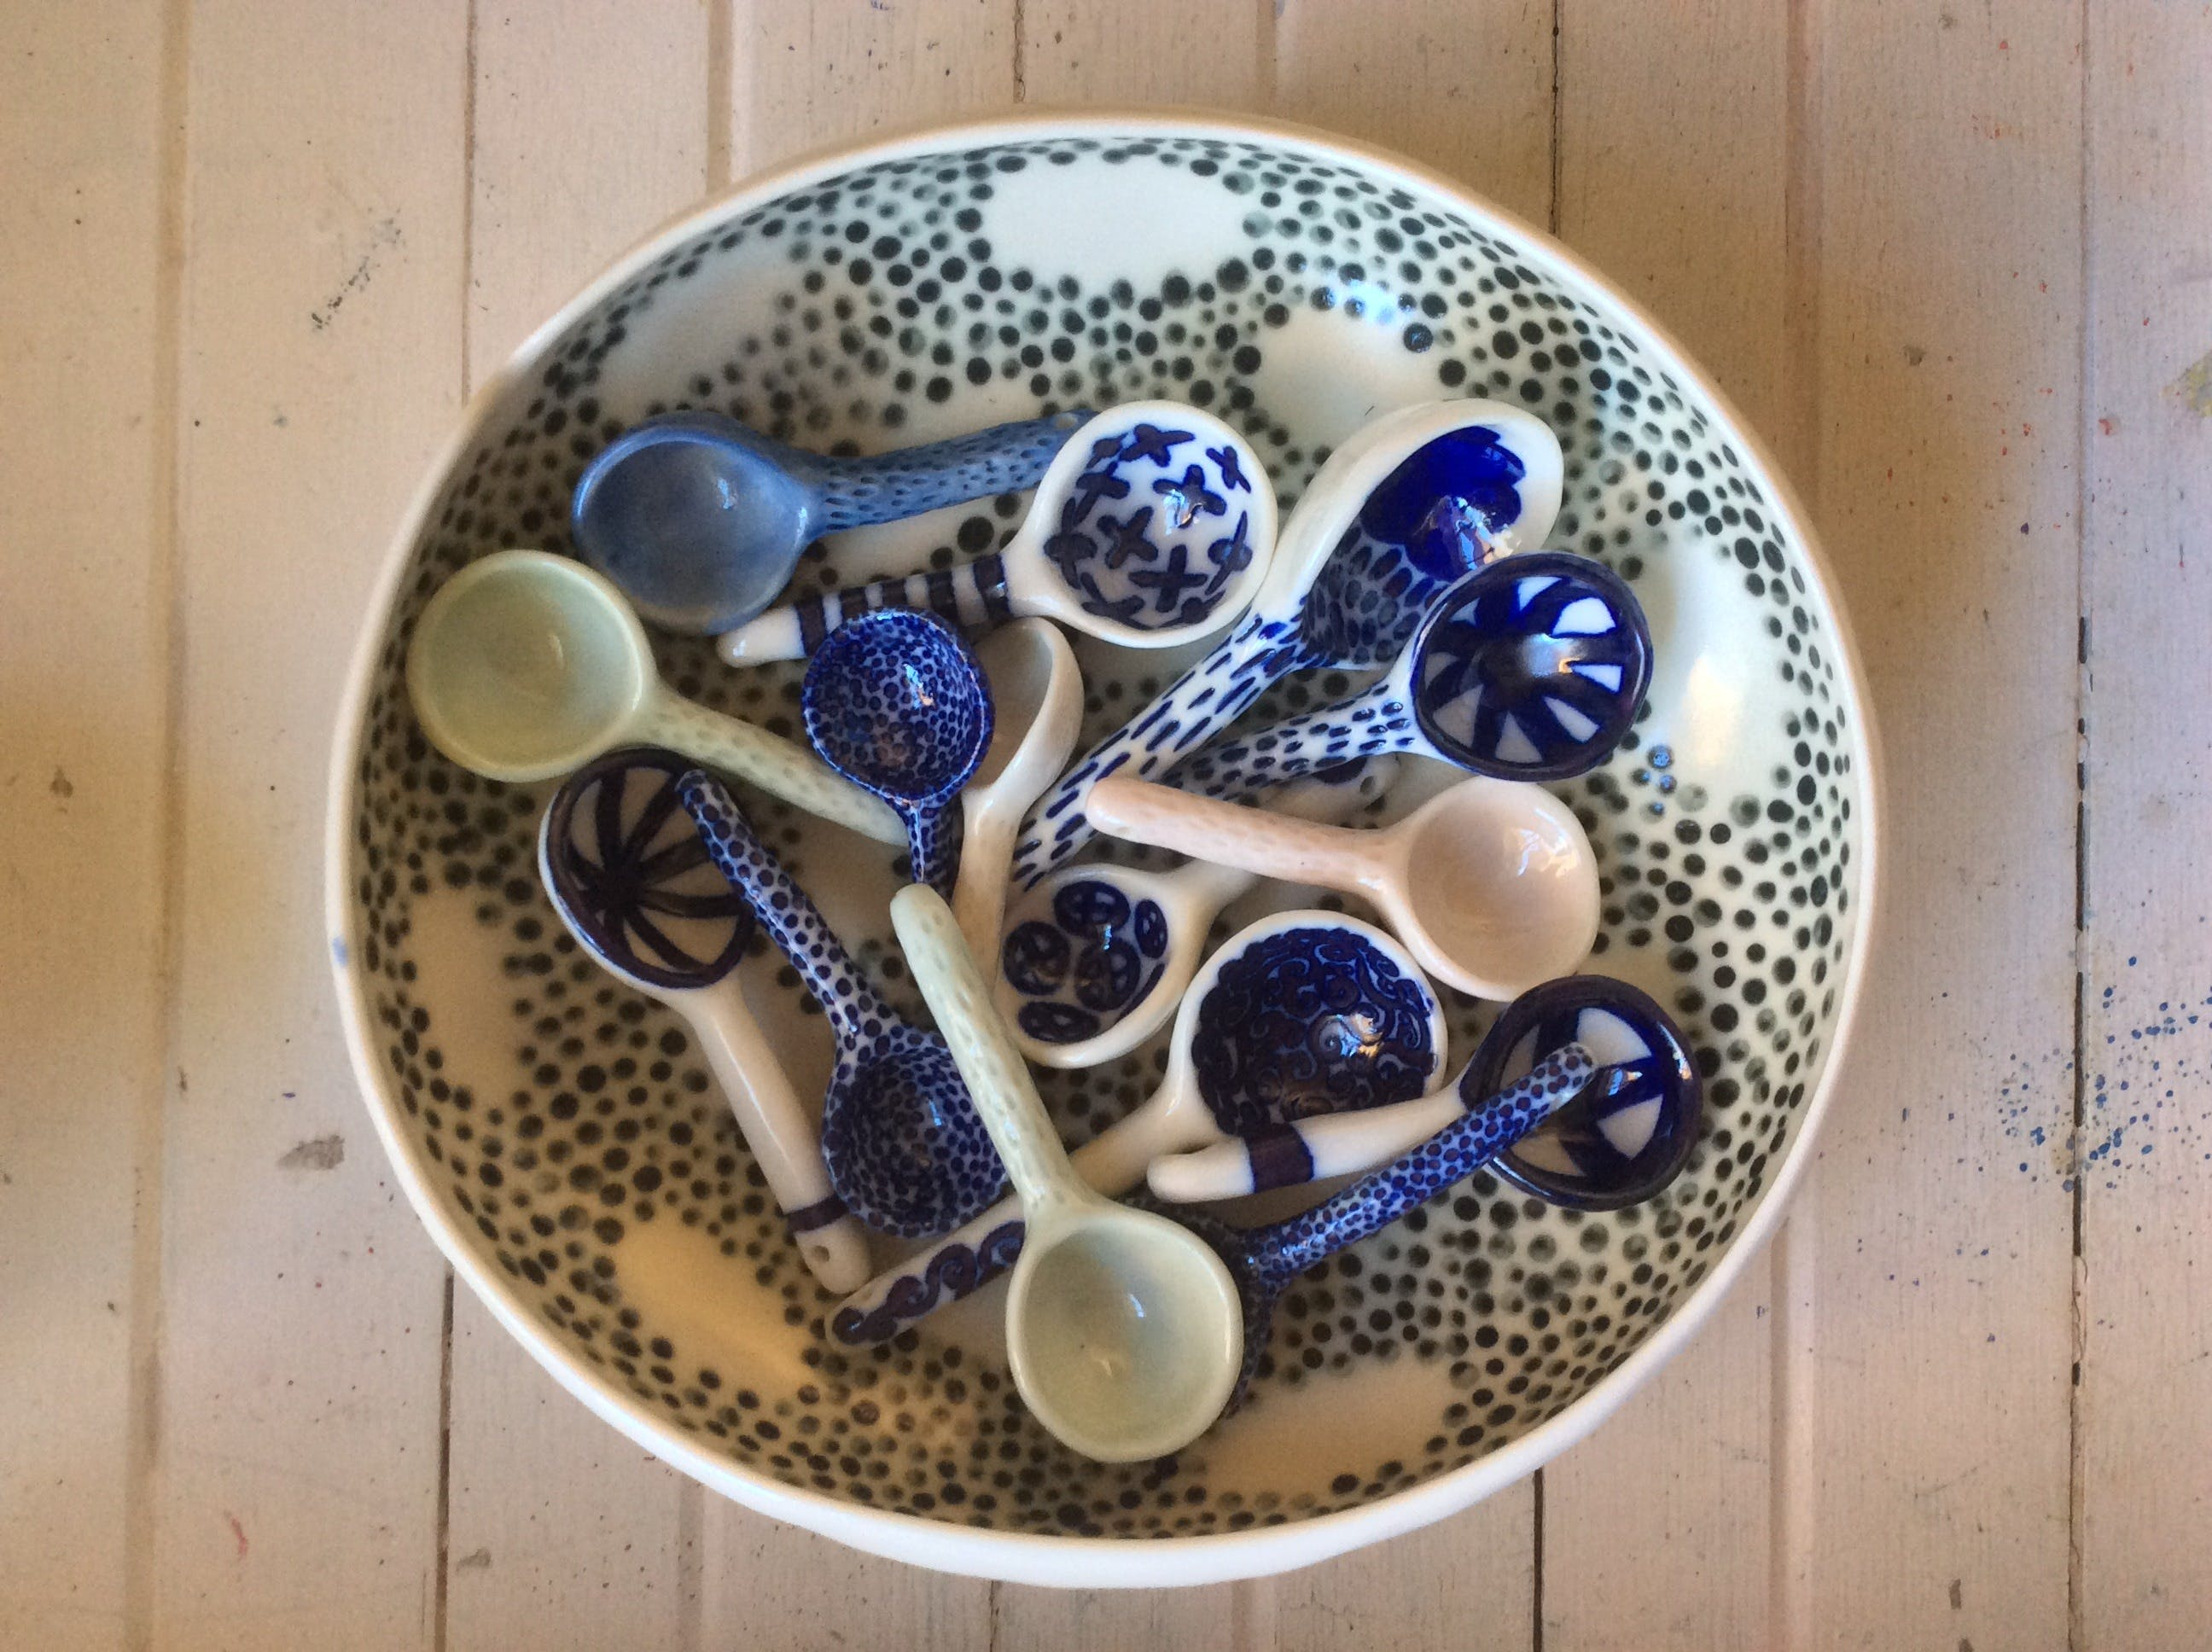 Ceramic Spoons with Nicole Ison - Surfers Gold Coast